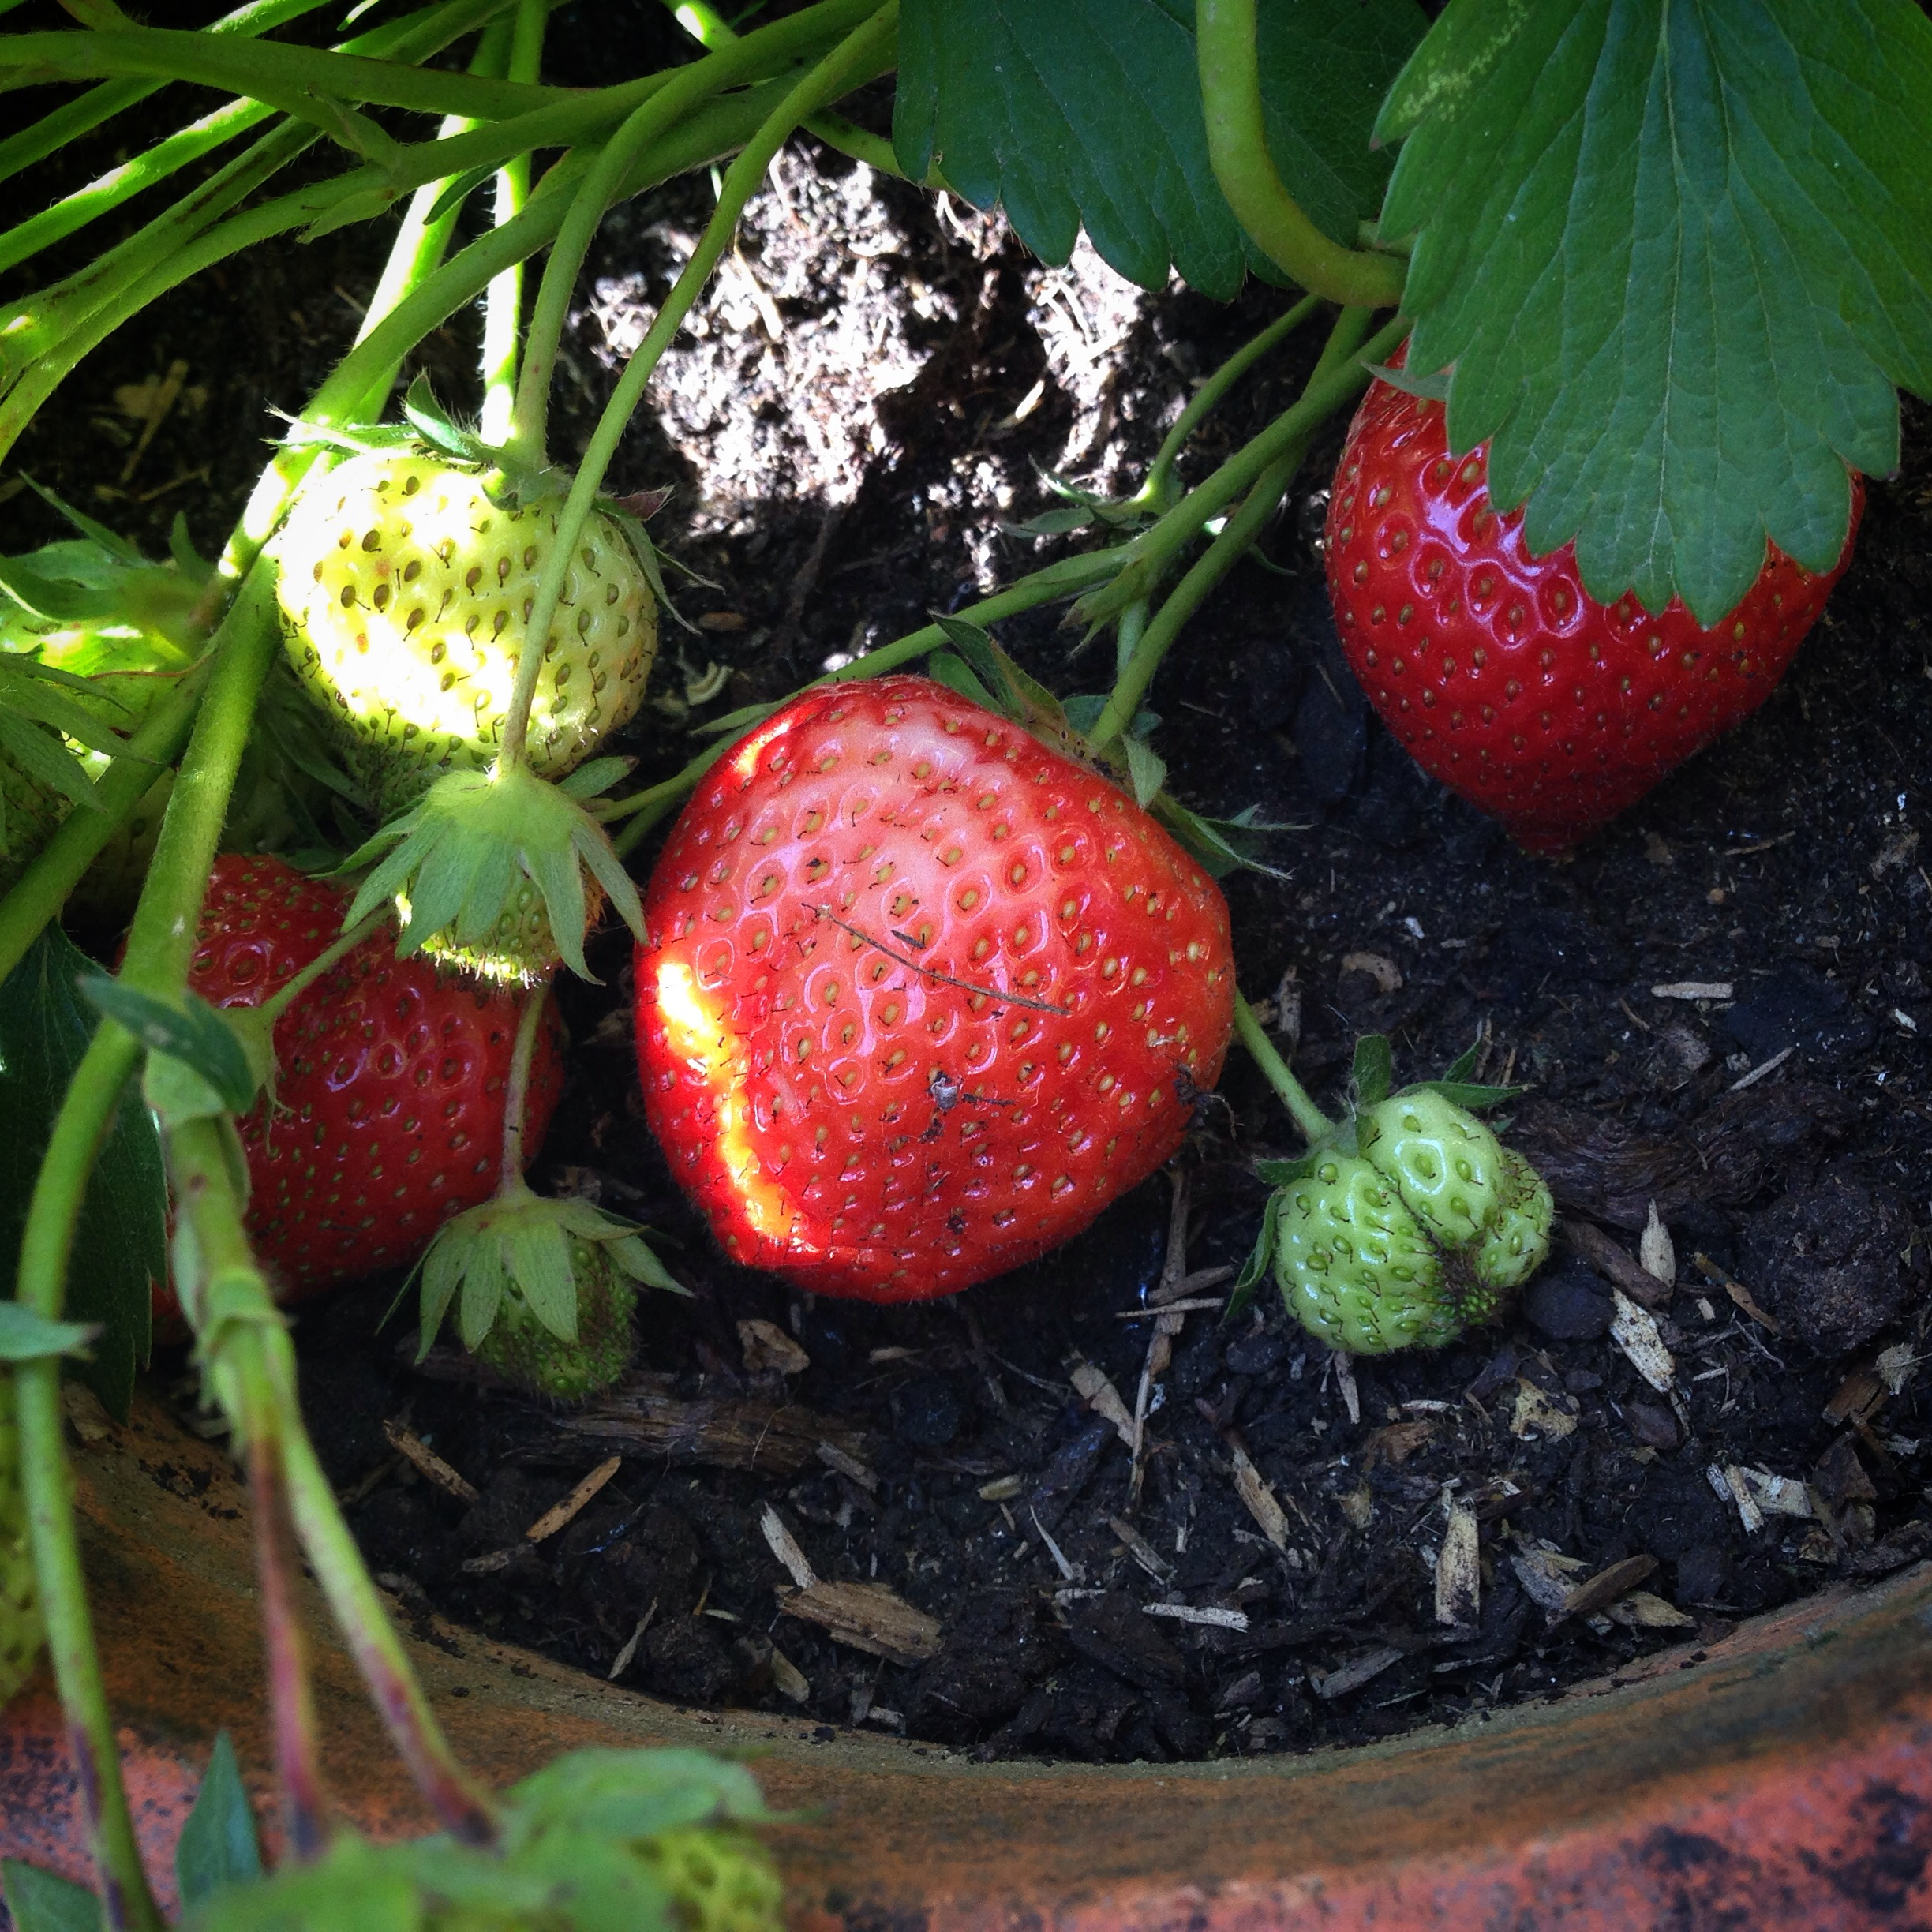 The first strawberries!